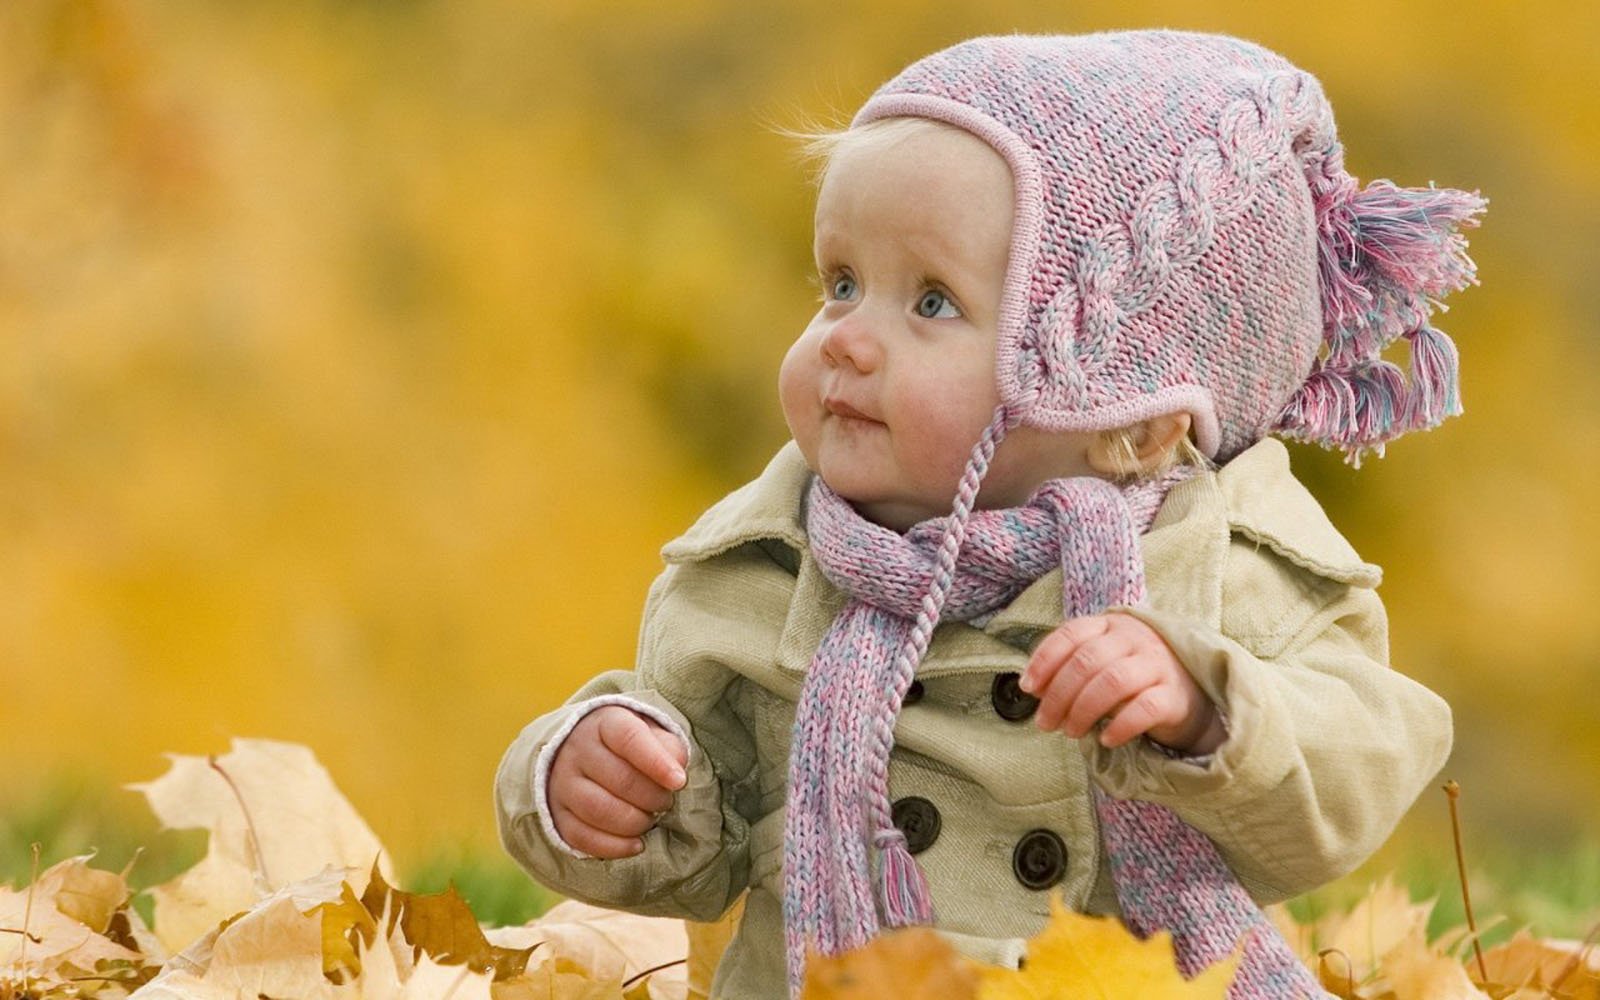 wallpapers Cute Babies Hd Wallpapers 1600x1000